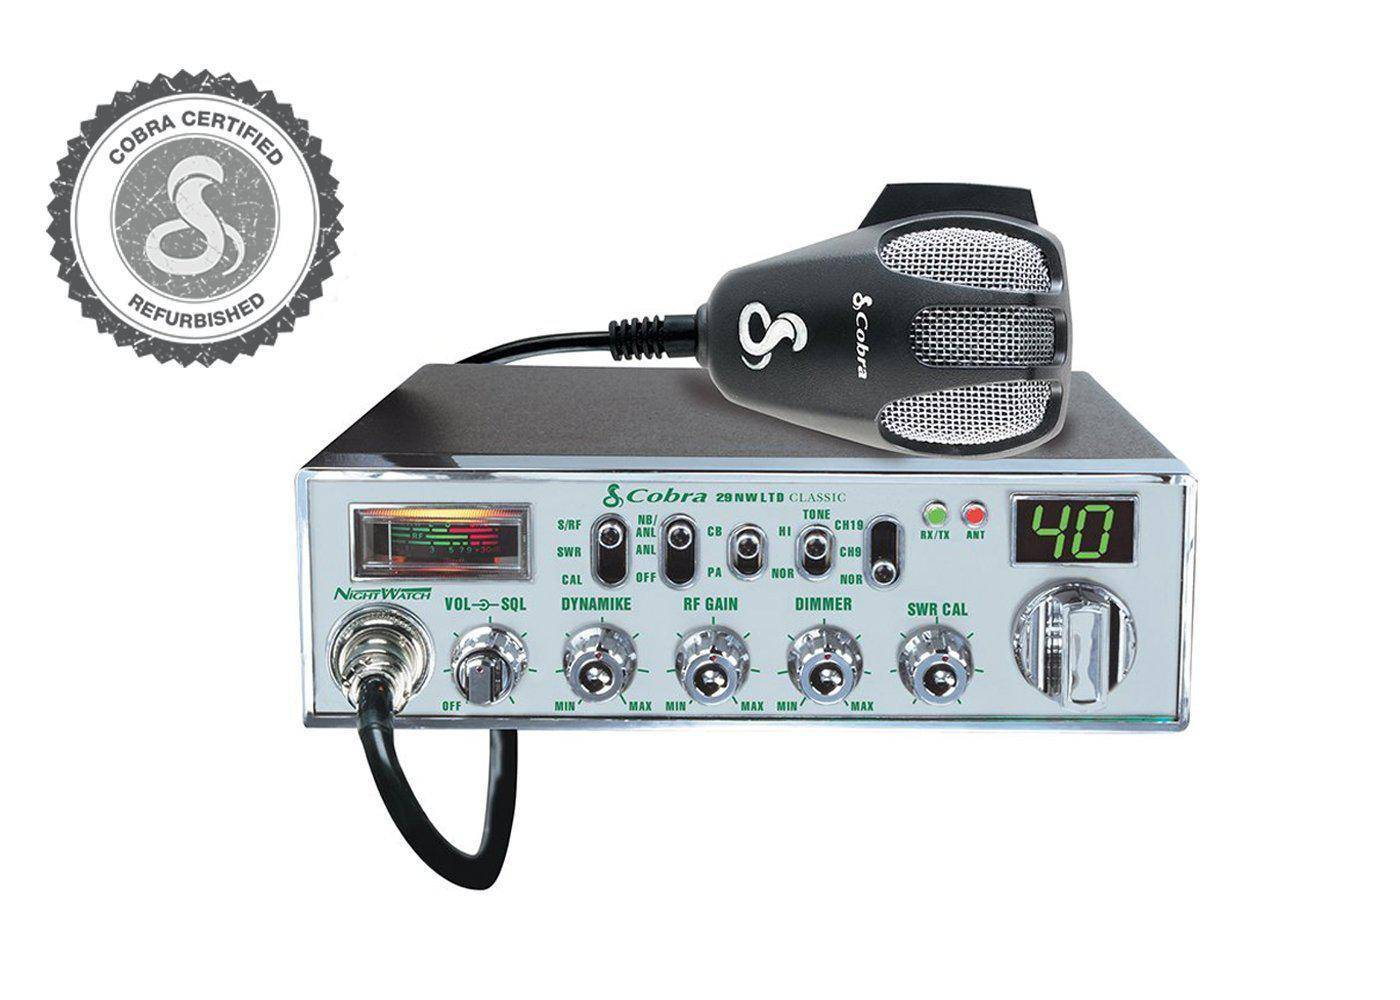 Cobra 29 NW (Refurb) Professional CB Radio